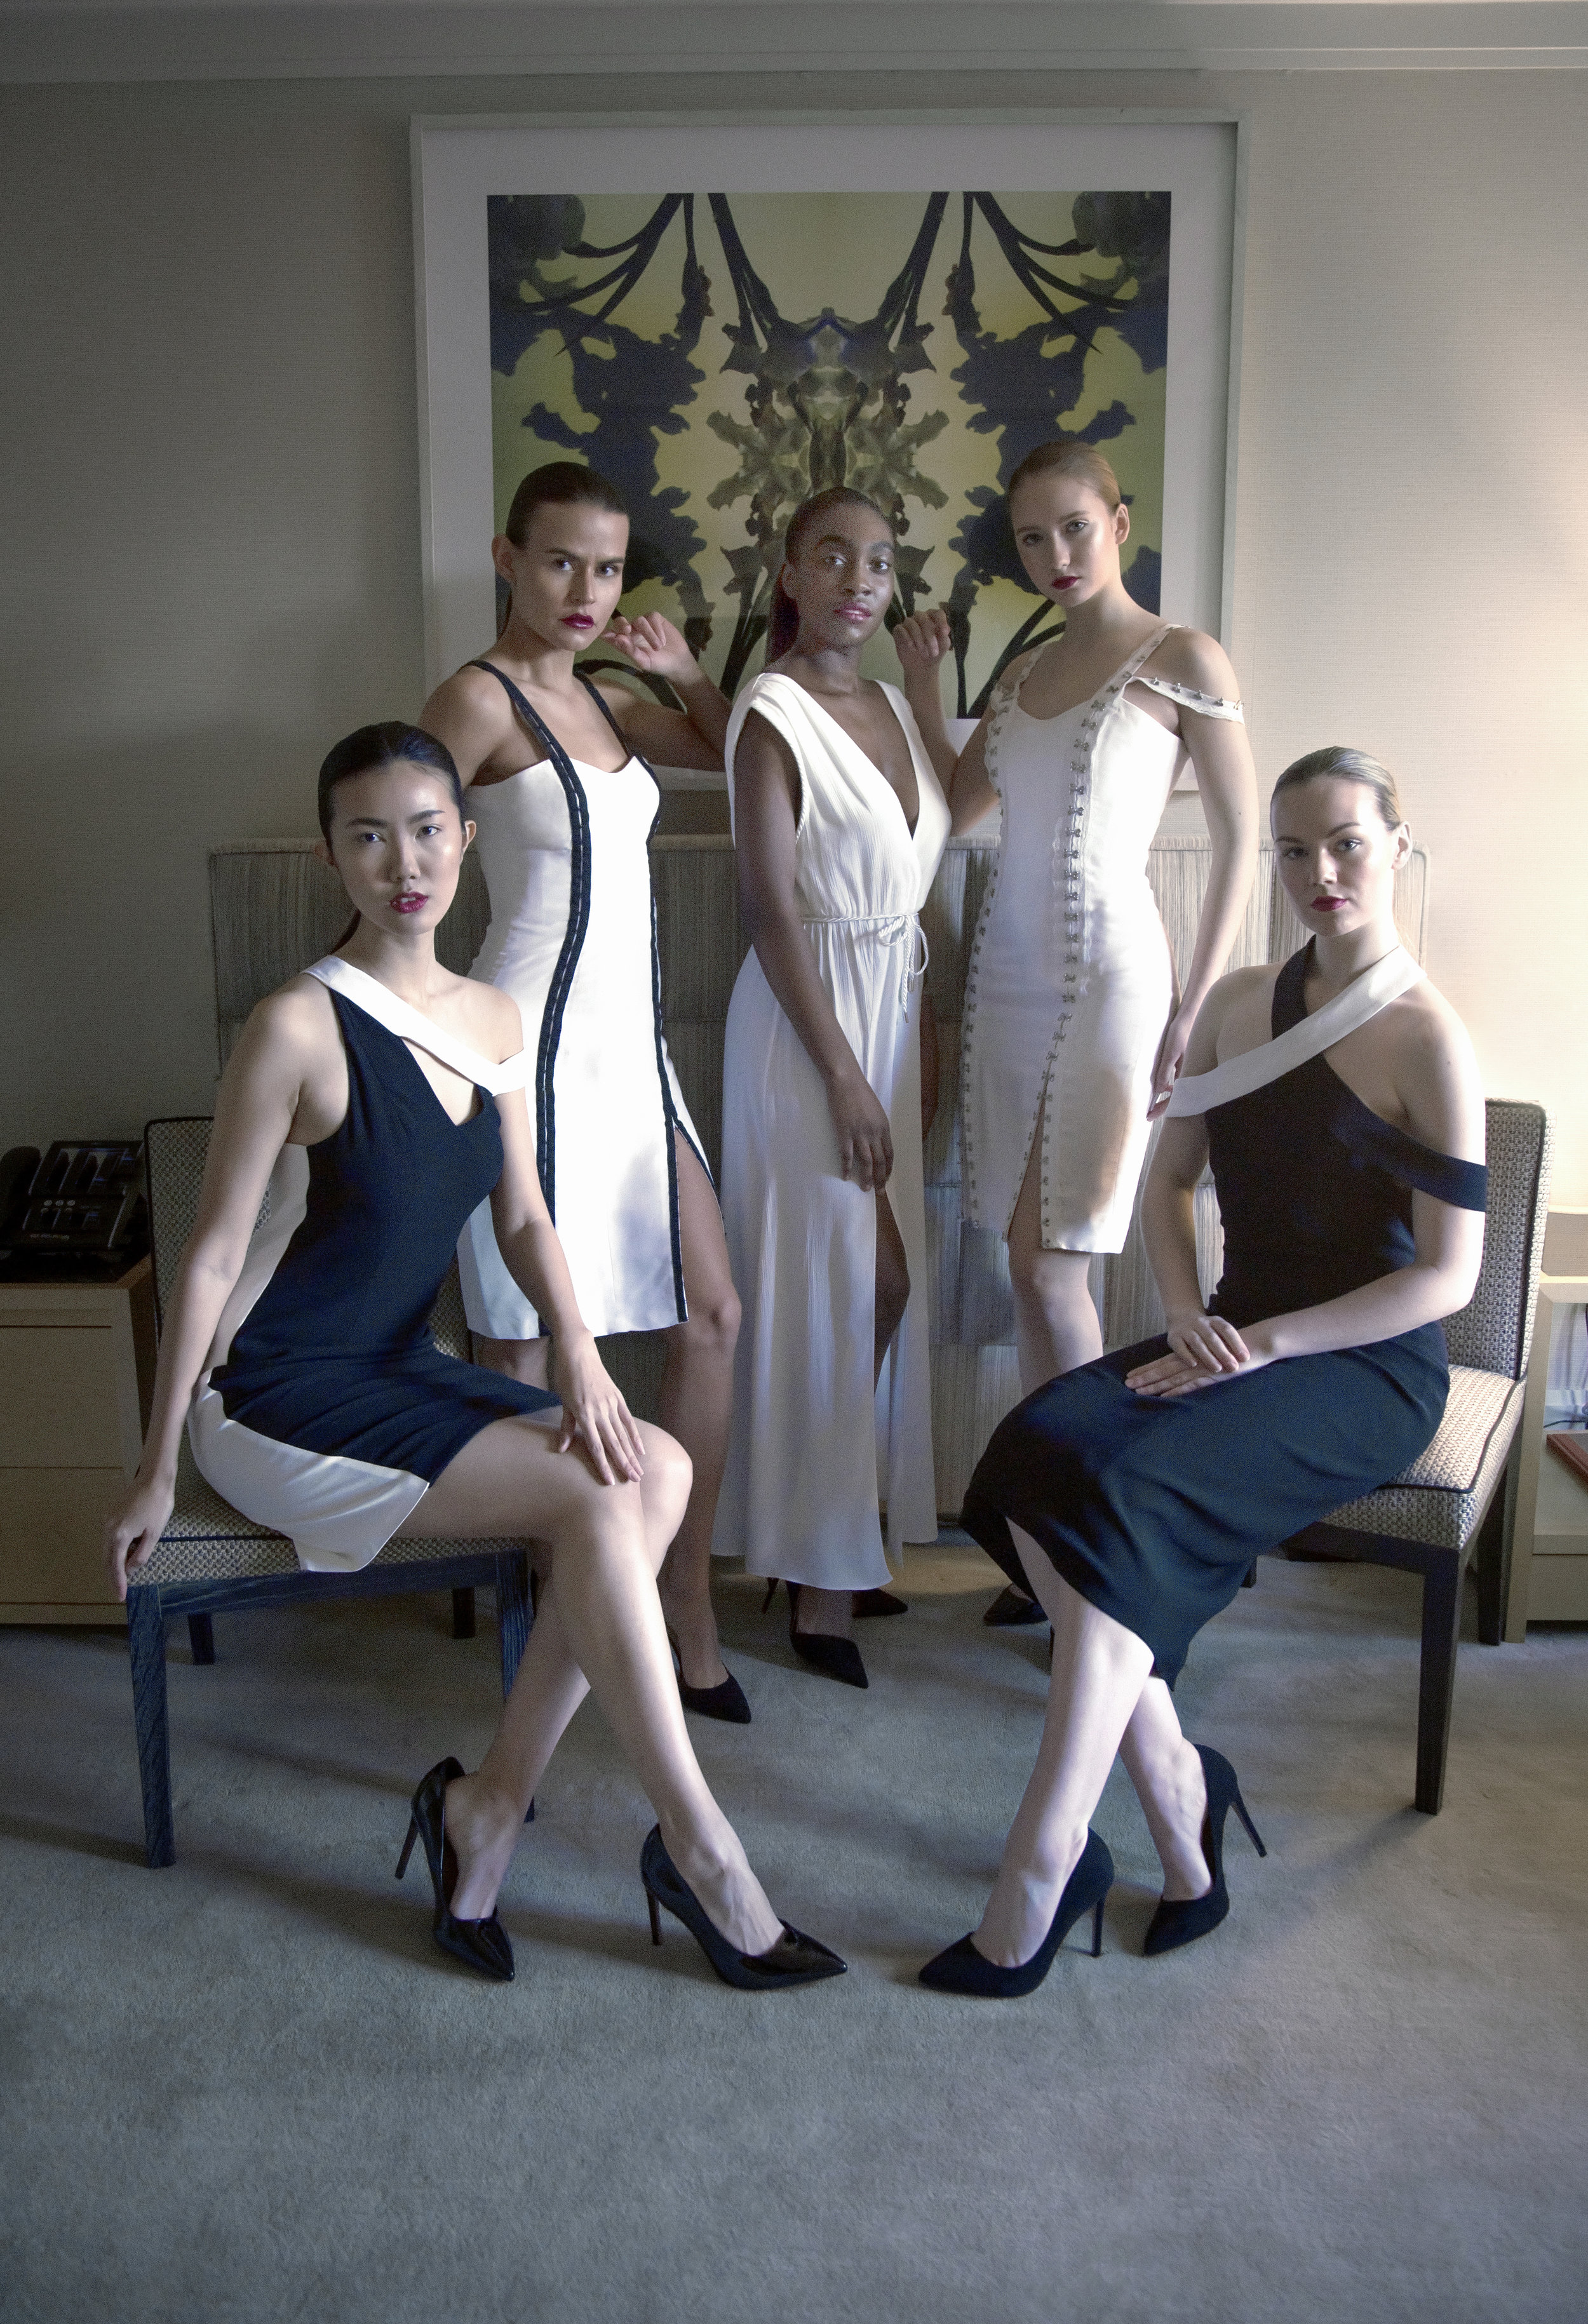 Look 8   (left to right) Asymmetrical off-the-shoulder dress, Fitted bustier dress, Belted maxi dress, Hook & eye trim dress, Criss cross + off the shoulder combo dress